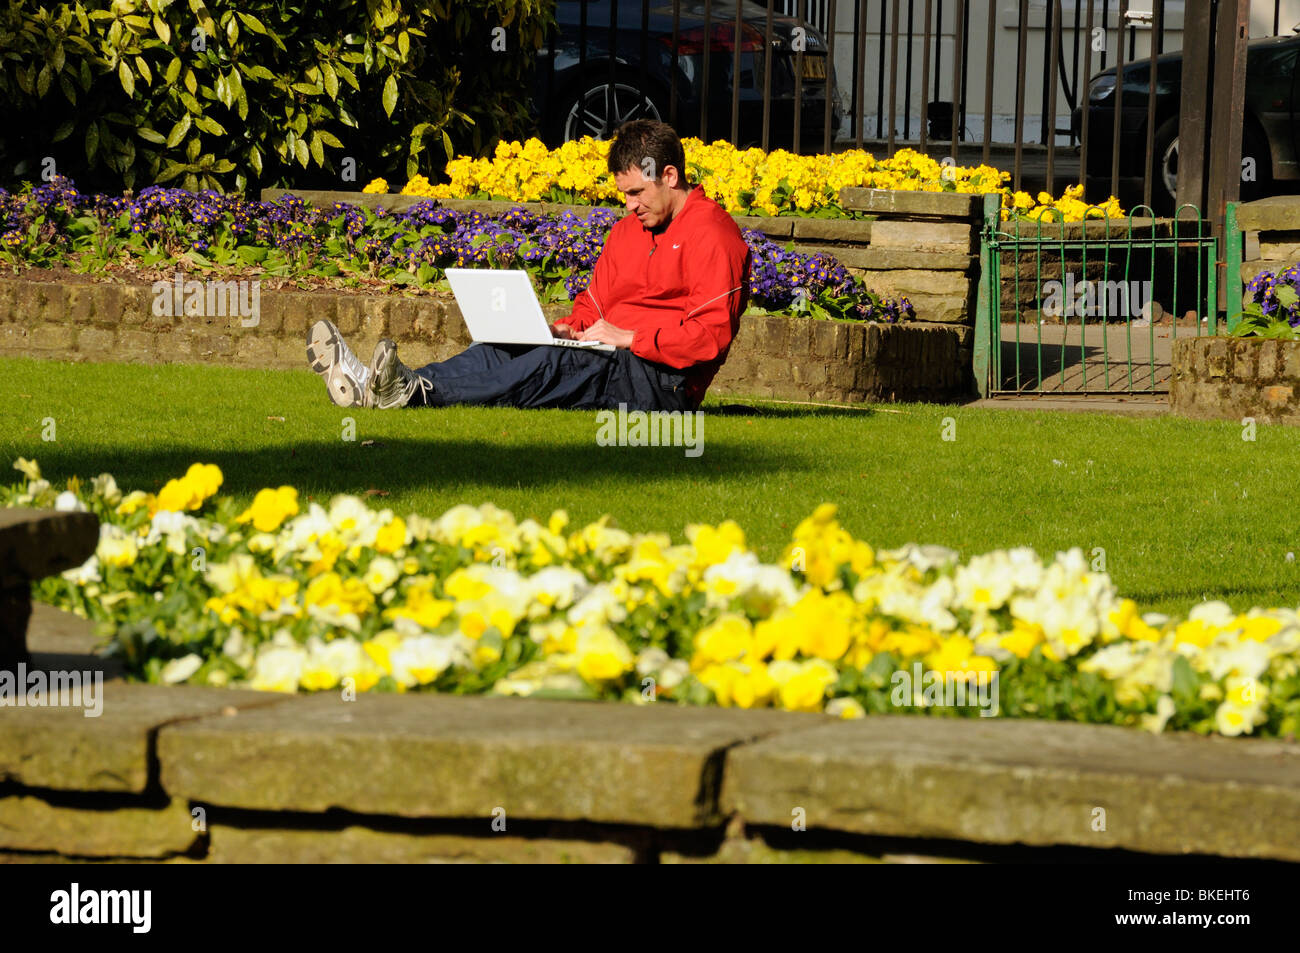 Man working outside on laptop in sunshine with spring flowers, Canonbury Square Islington London England UK - Stock Image